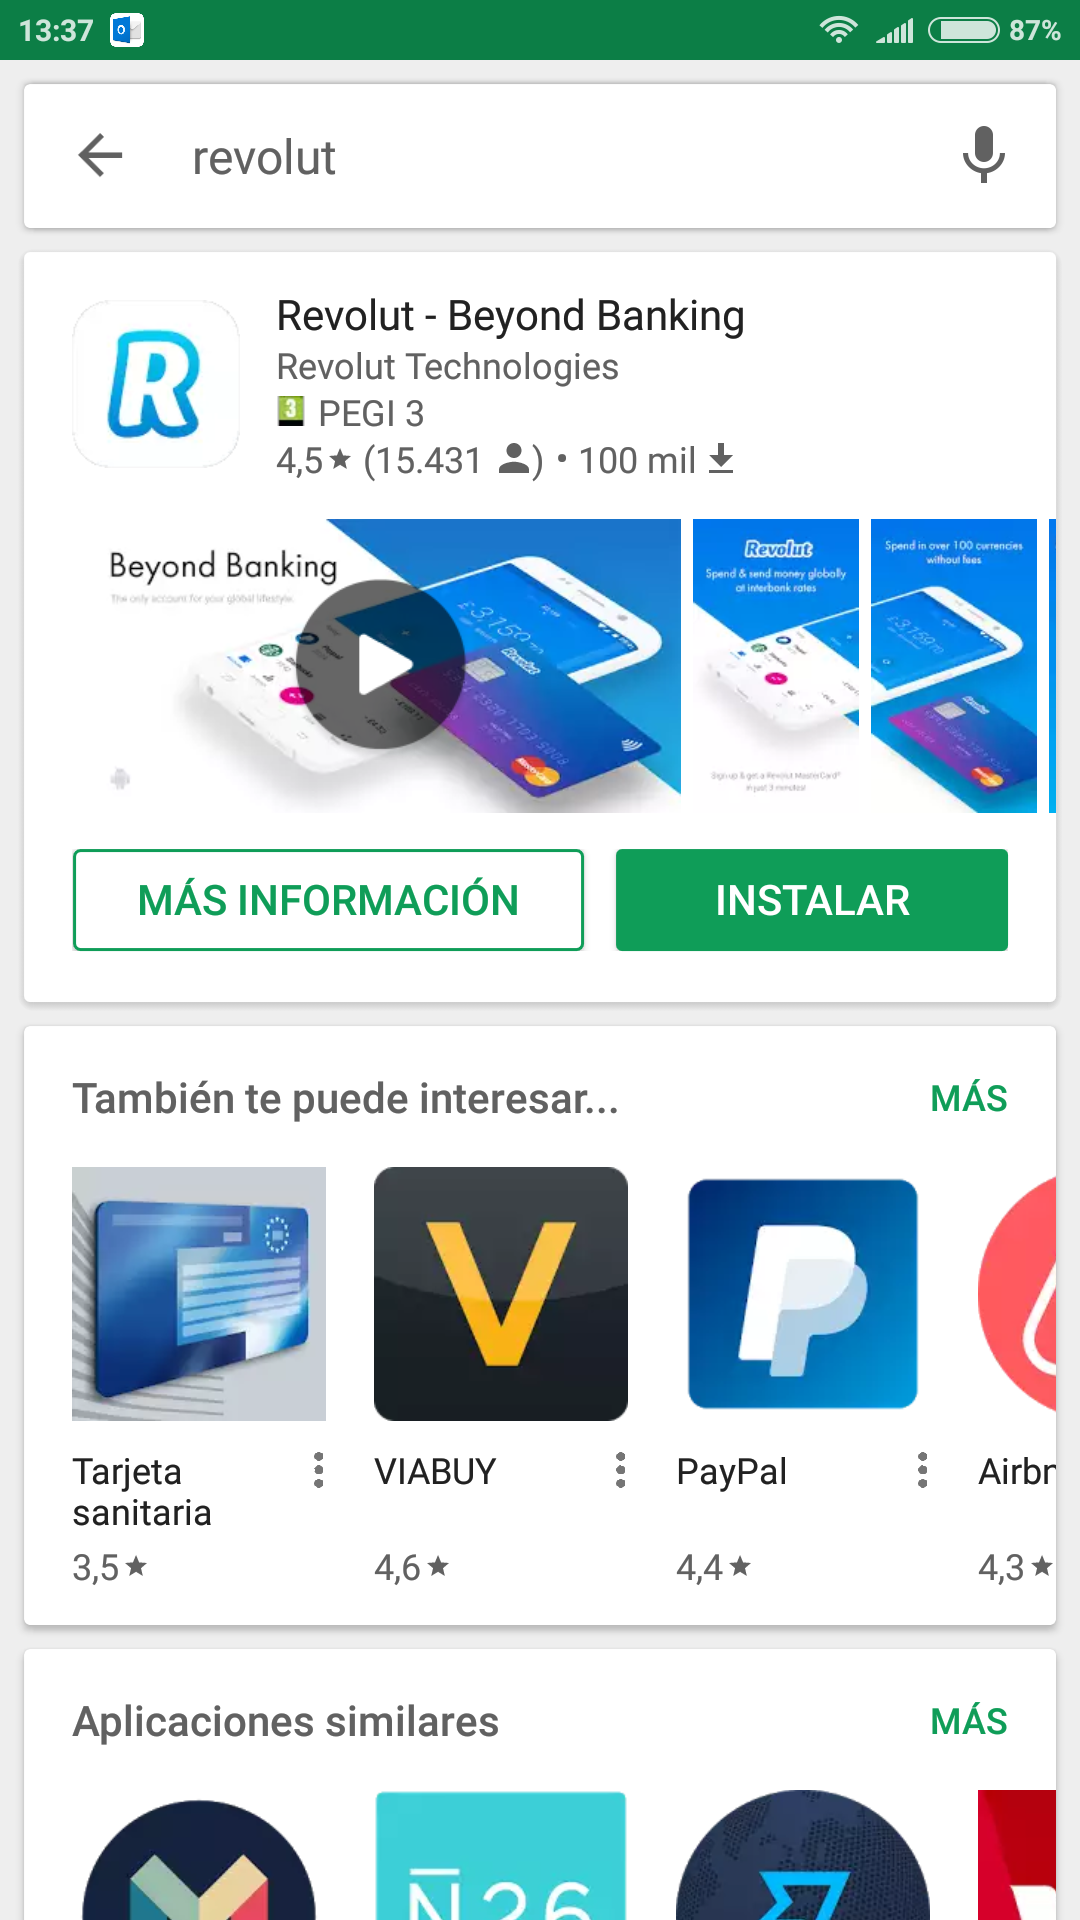 Img post REVOLUT. Registrate paso a paso 2 - Pasaporte y Millas